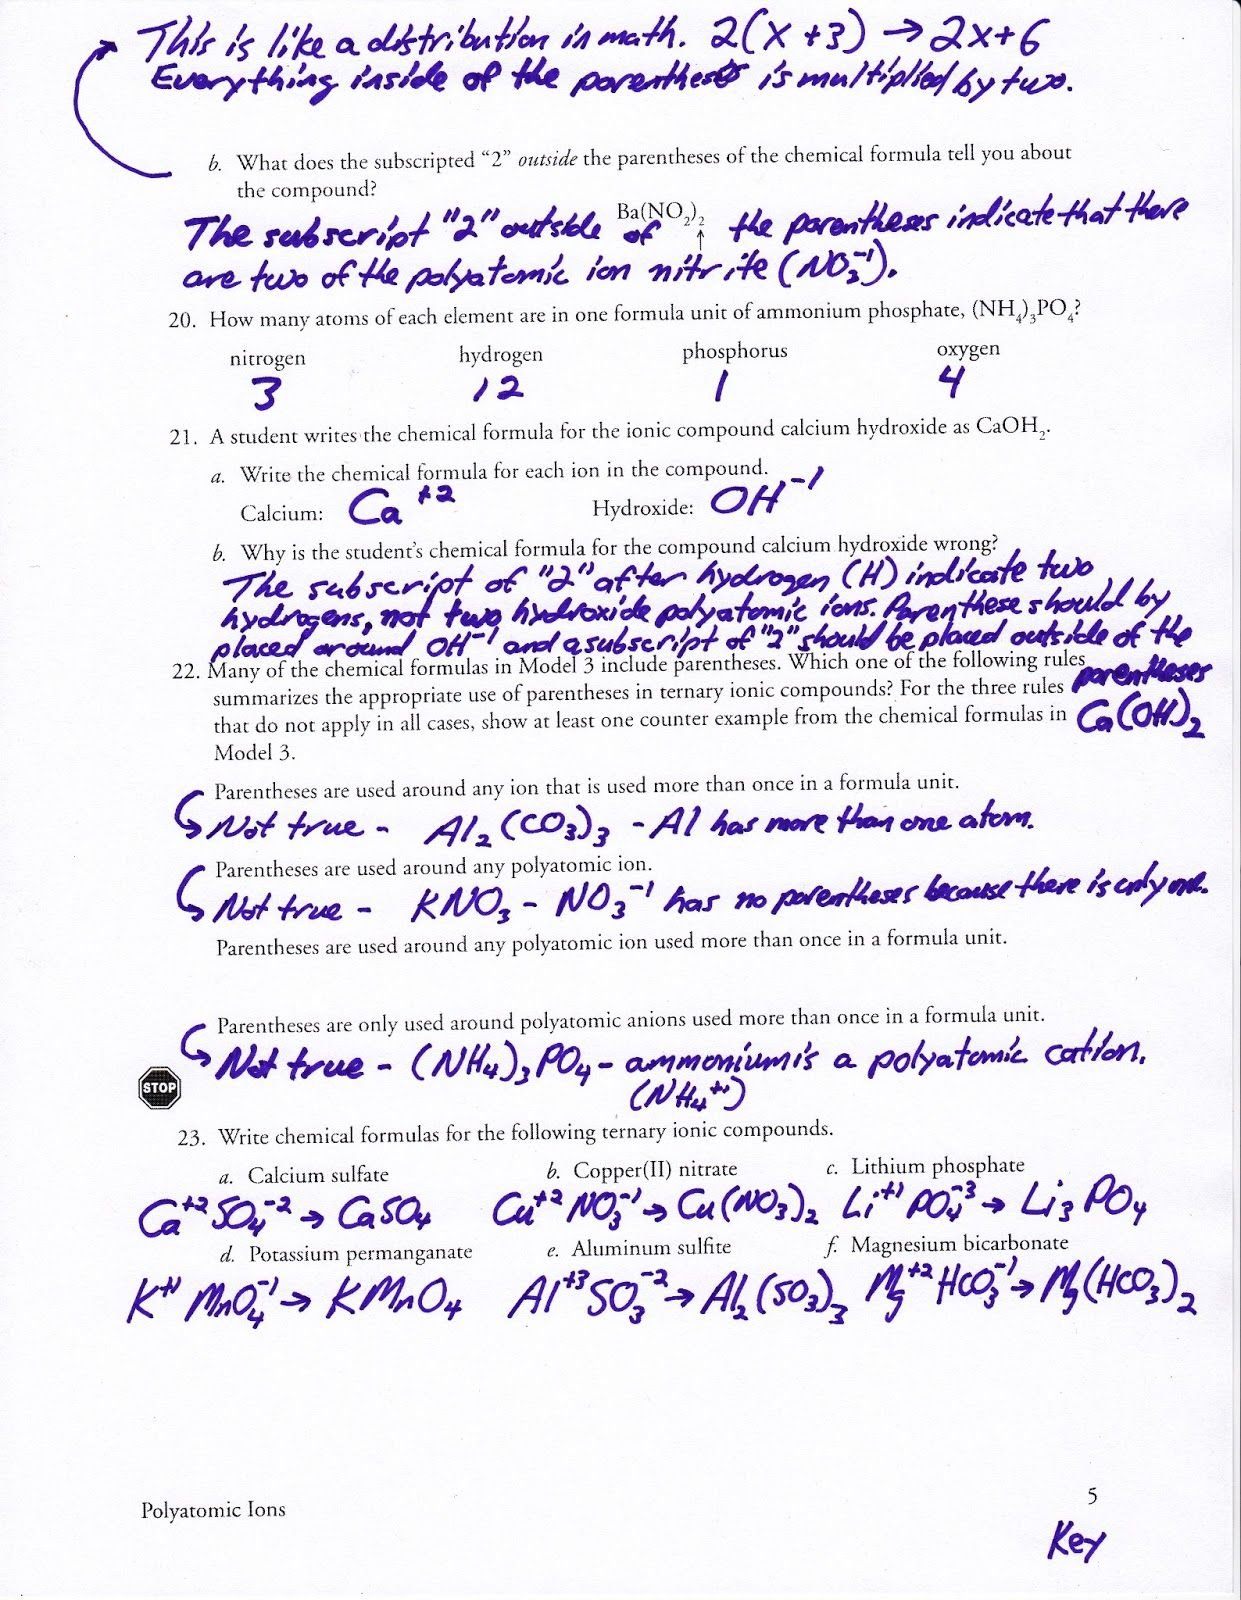 Polyatomic Ions Worksheet Answer Key Things to Wear – Nomenclature Worksheet 3 Ionic Compounds Containing Polyatomic Ions